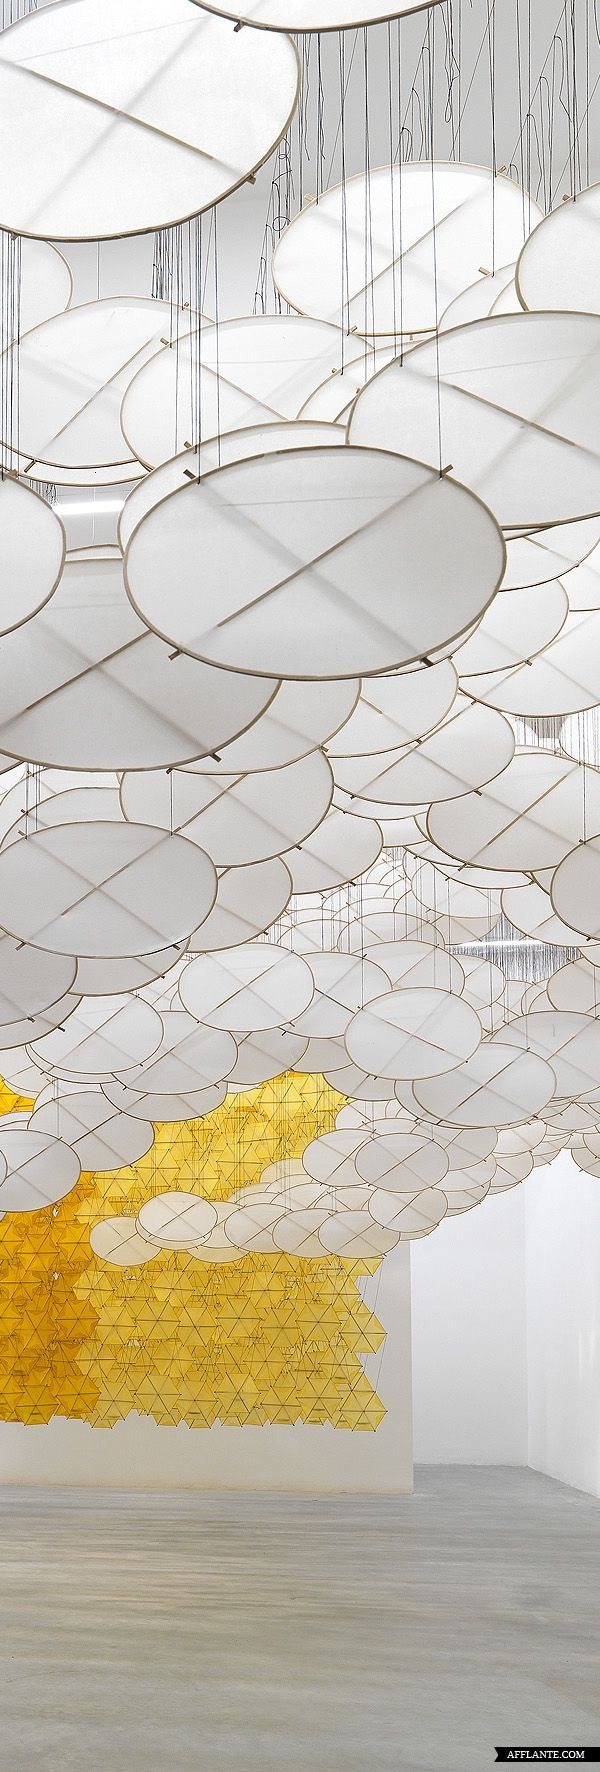 The Other Sun, Jacob Hashimoto.